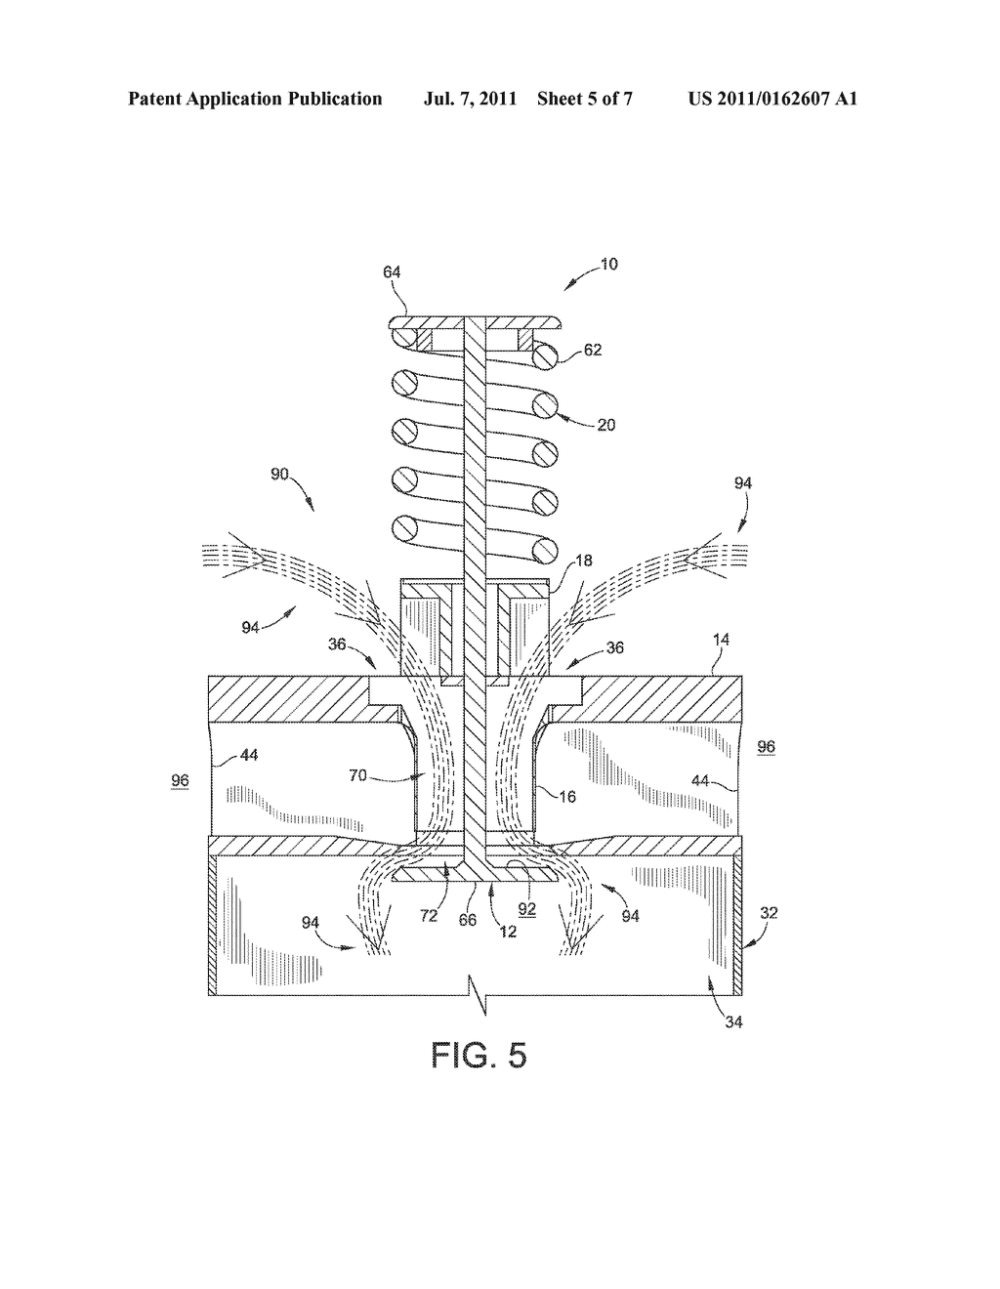 medium resolution of single poppet valve cylinder head assembly for internal combustion engine diagram schematic and image 06